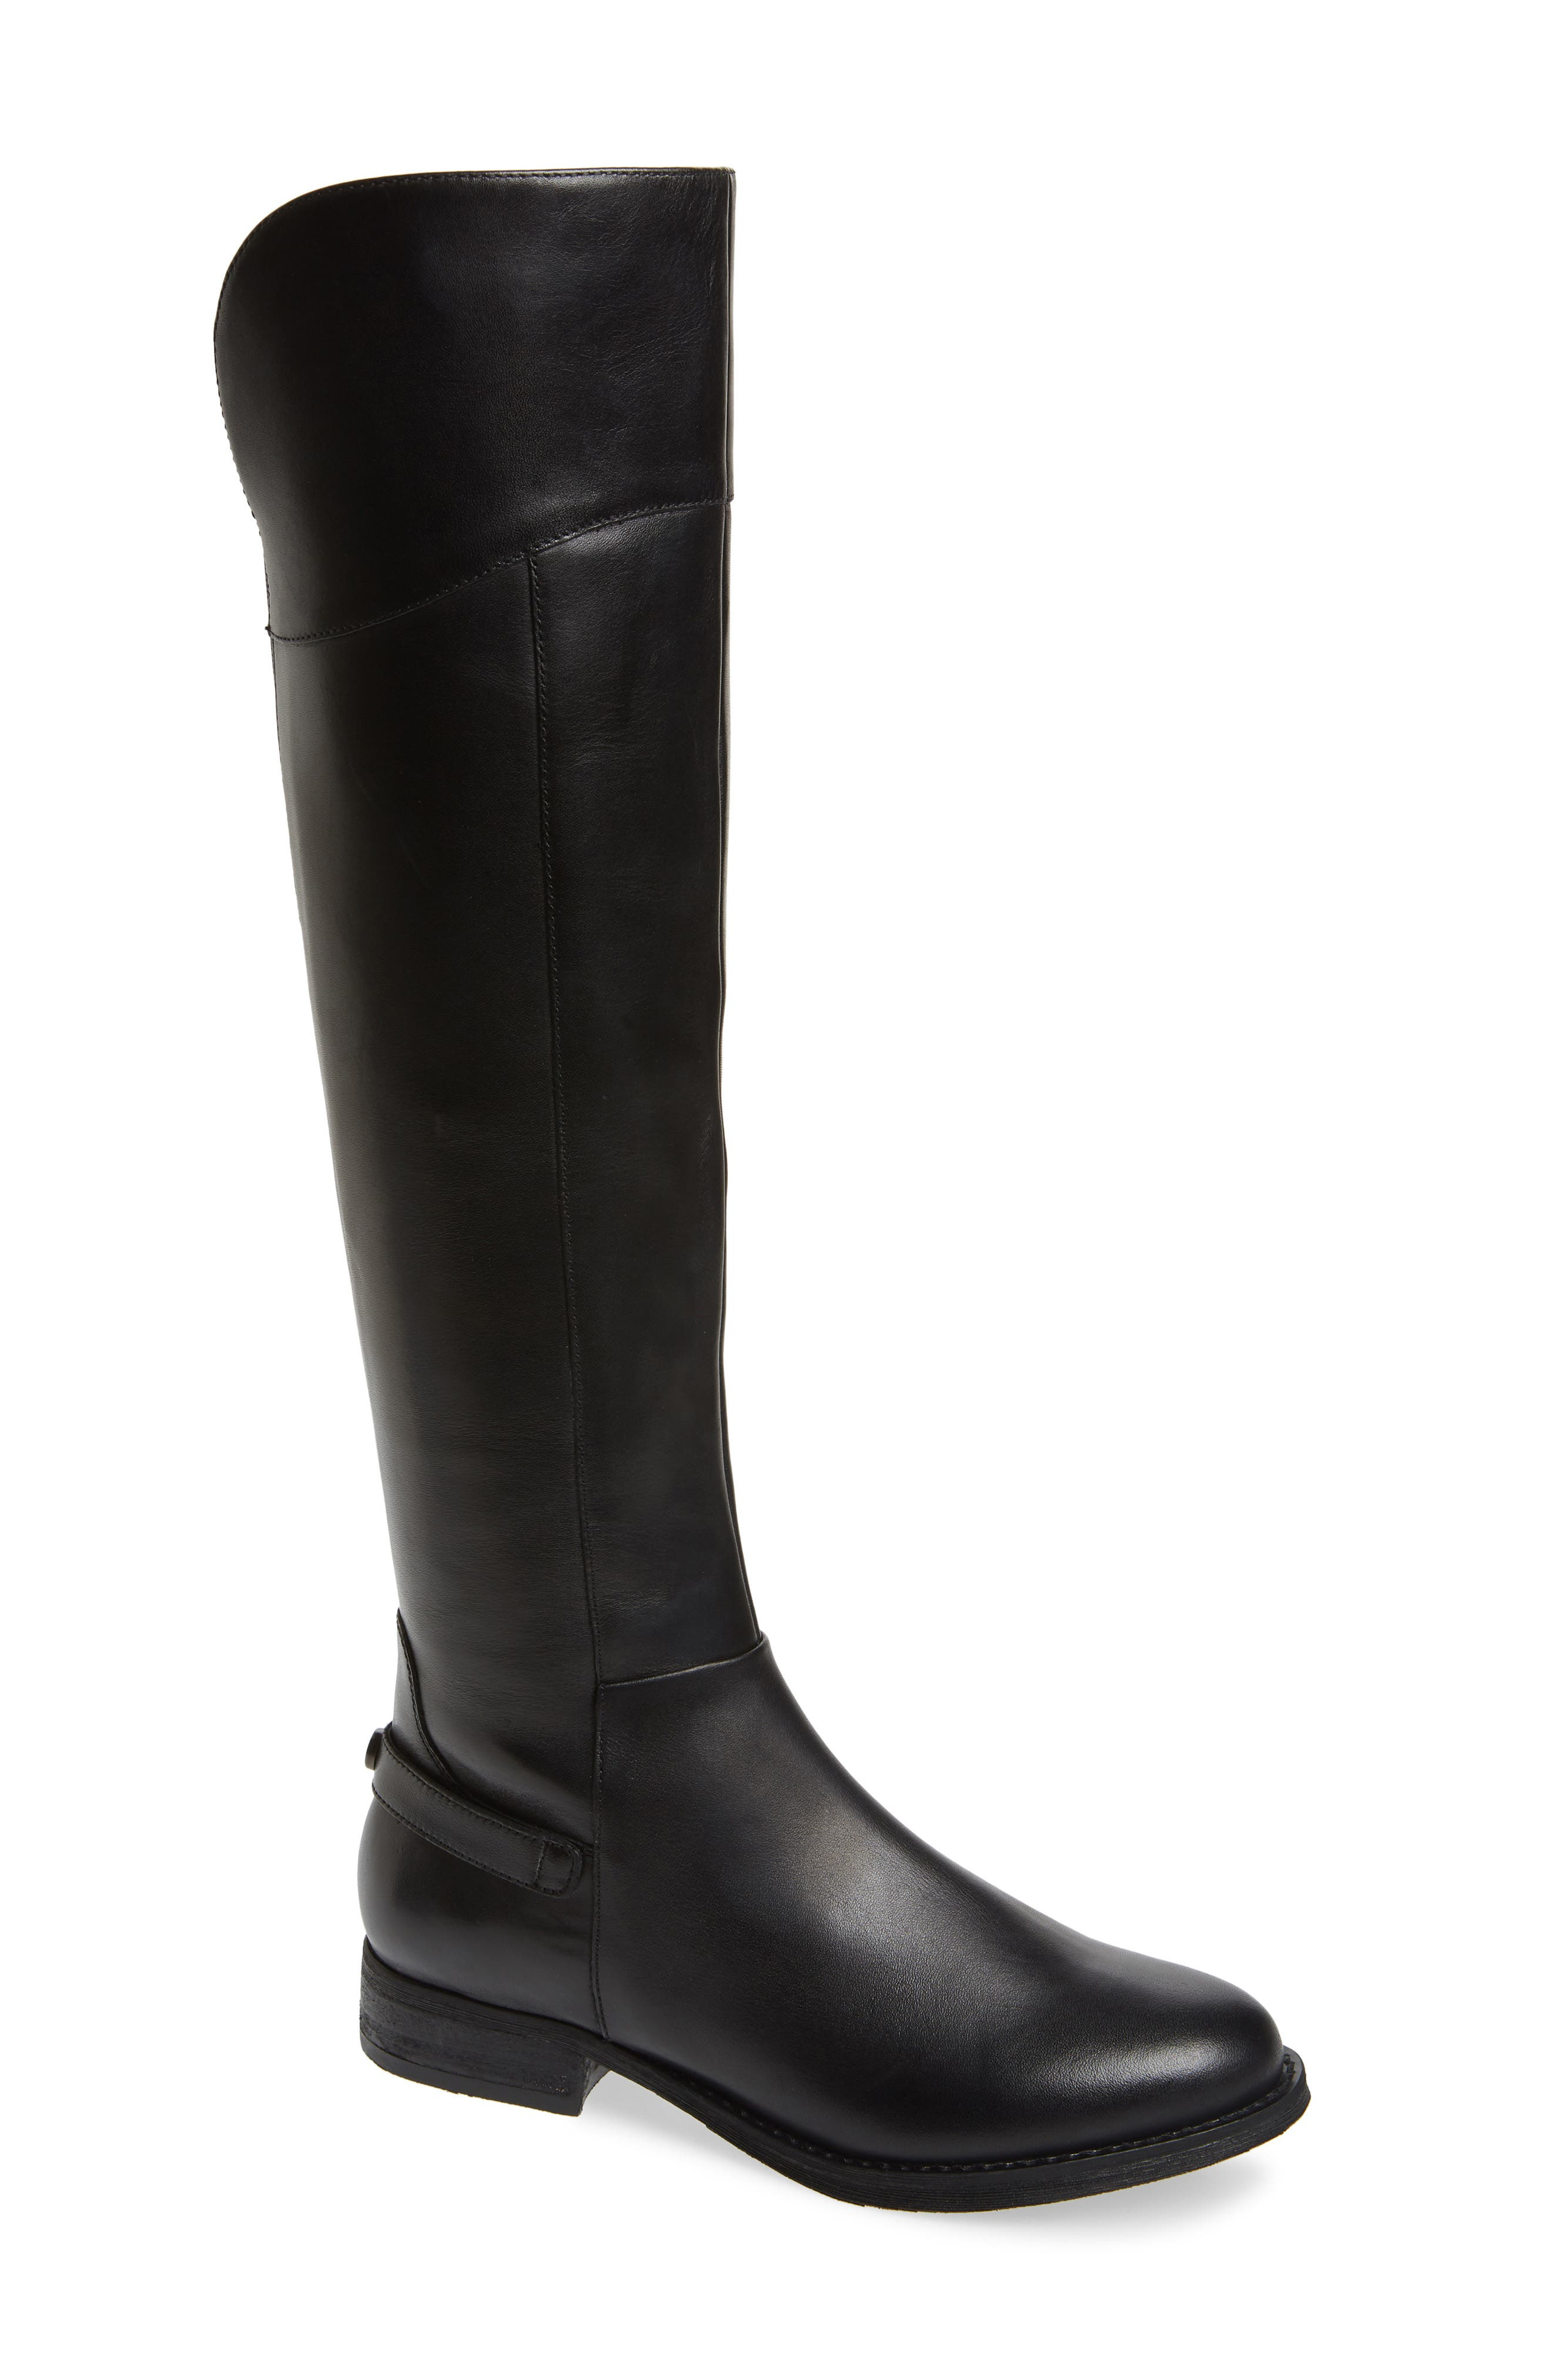 Marianne Over the Knee Boot,                             Main thumbnail 1, color,                             BLACK LEATHER